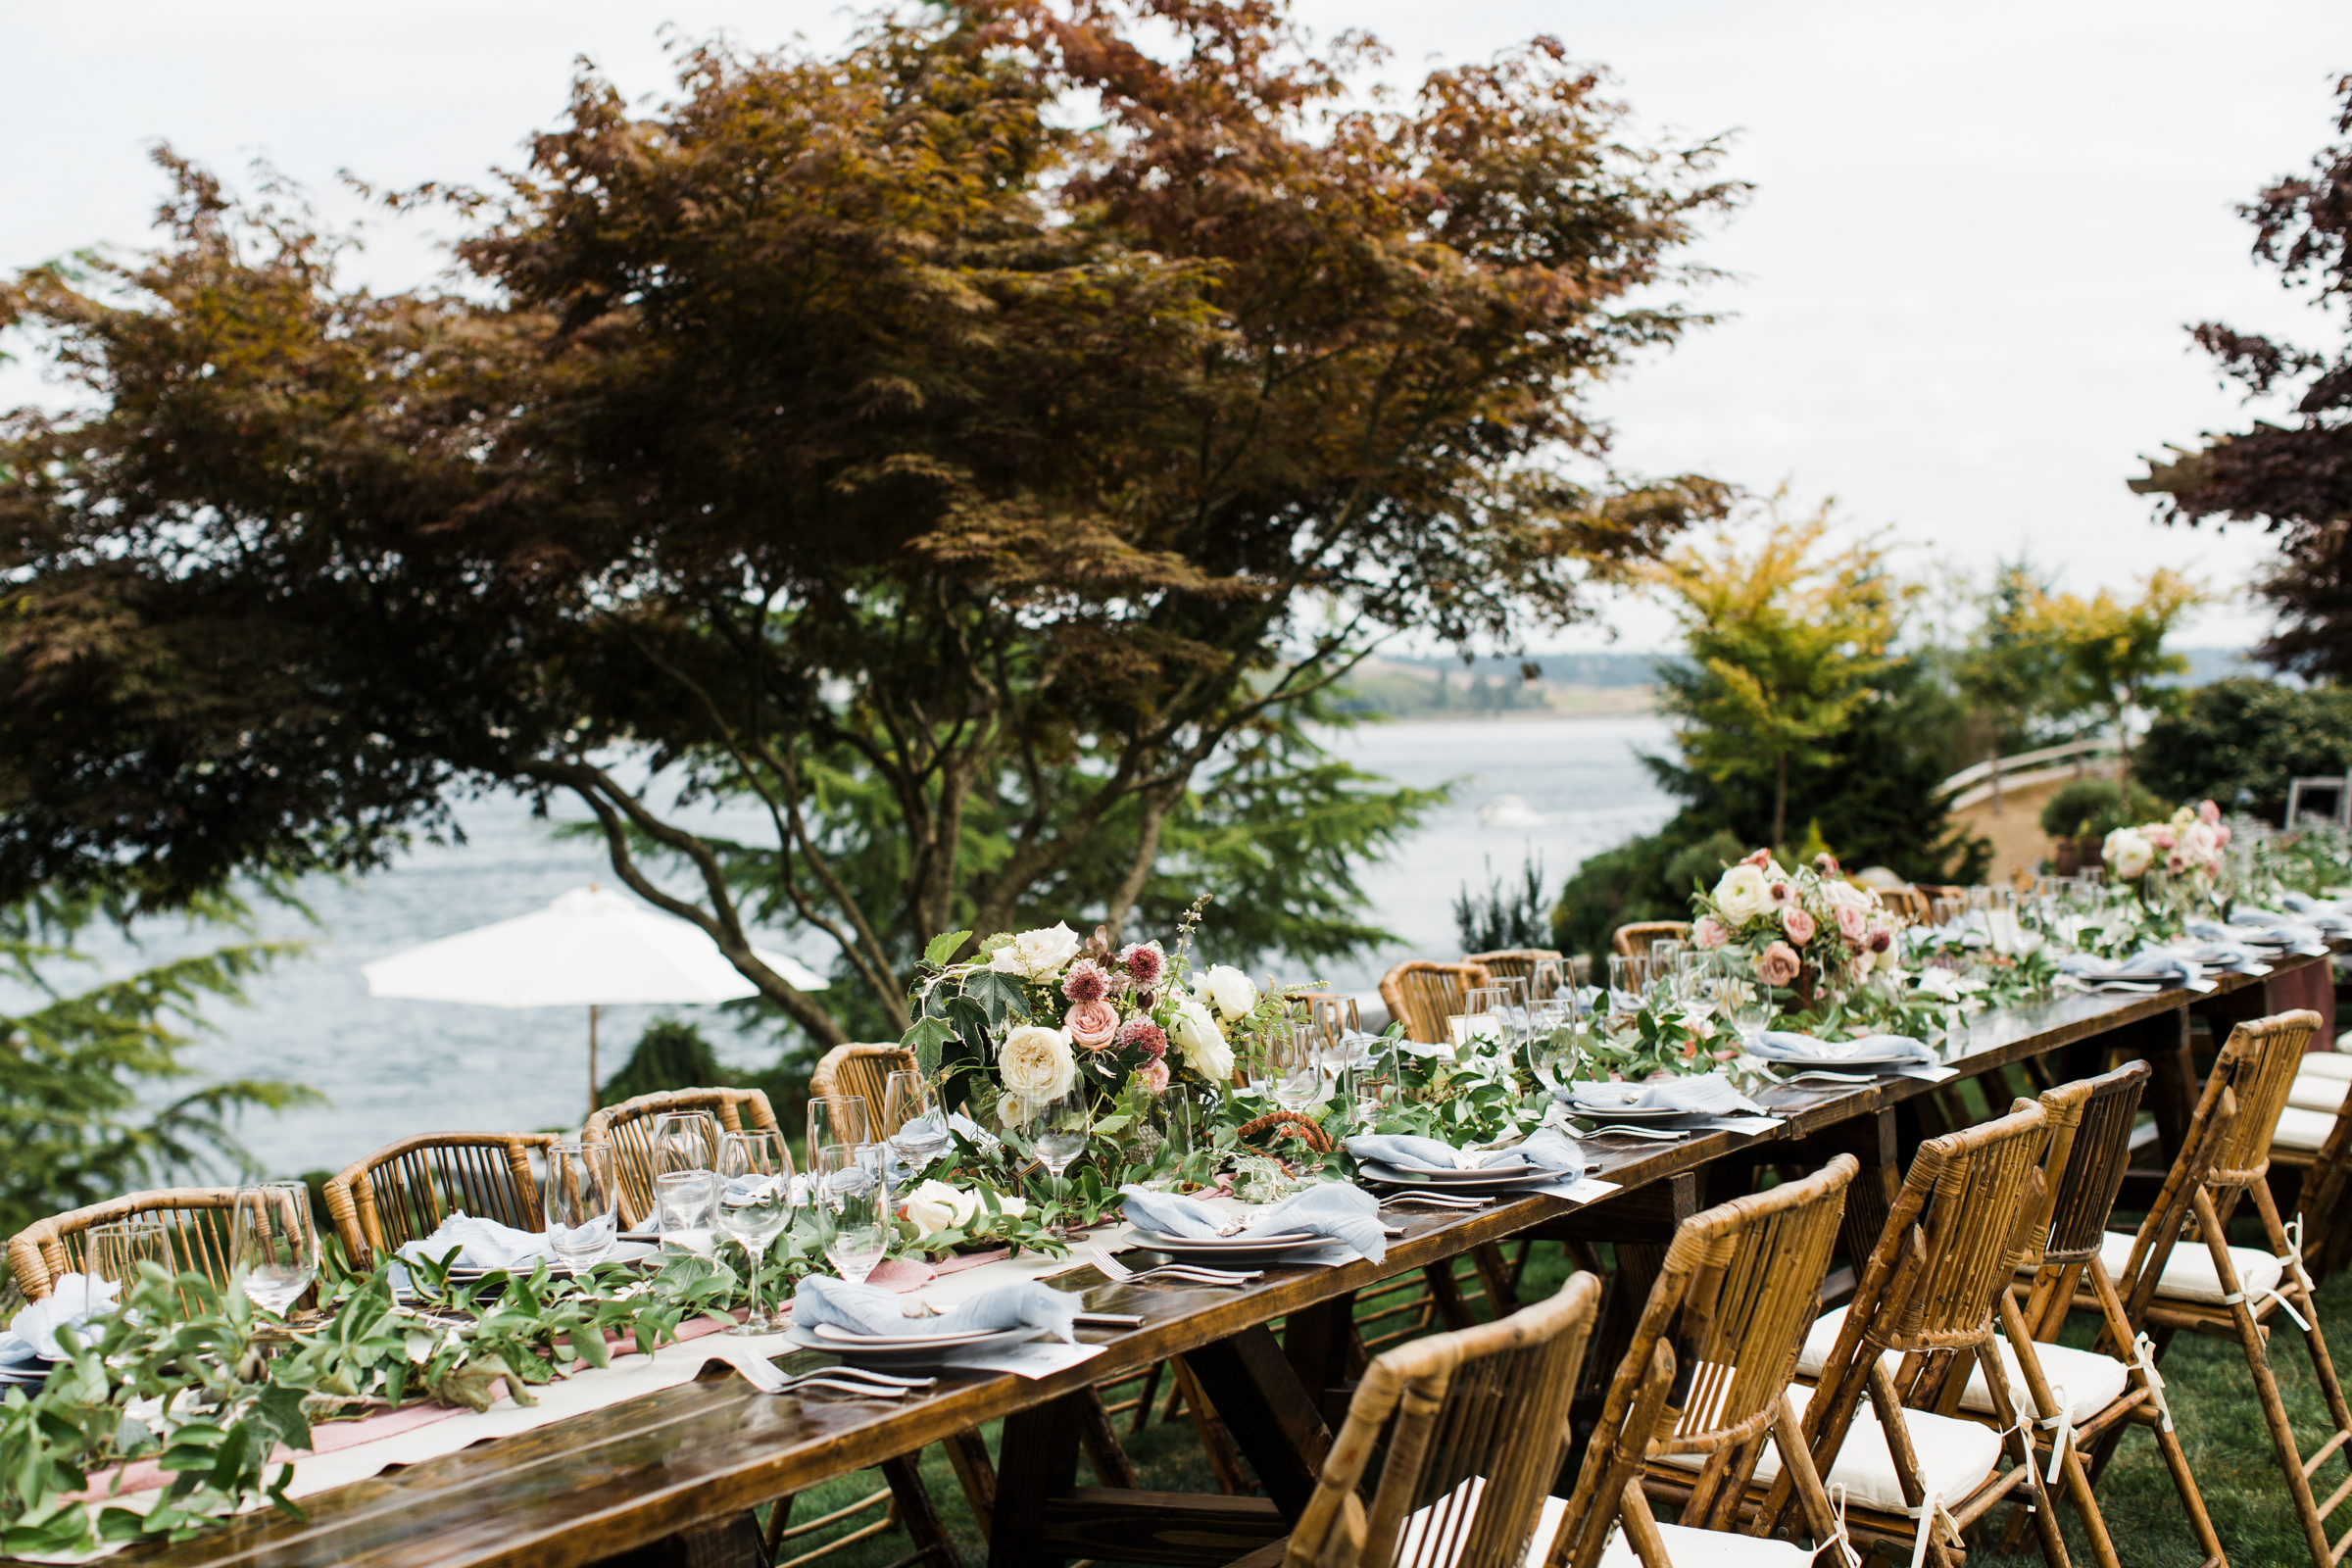 Rustic beachside reception table with bamboo chairs - photo by Stephanie Cristalli Photography